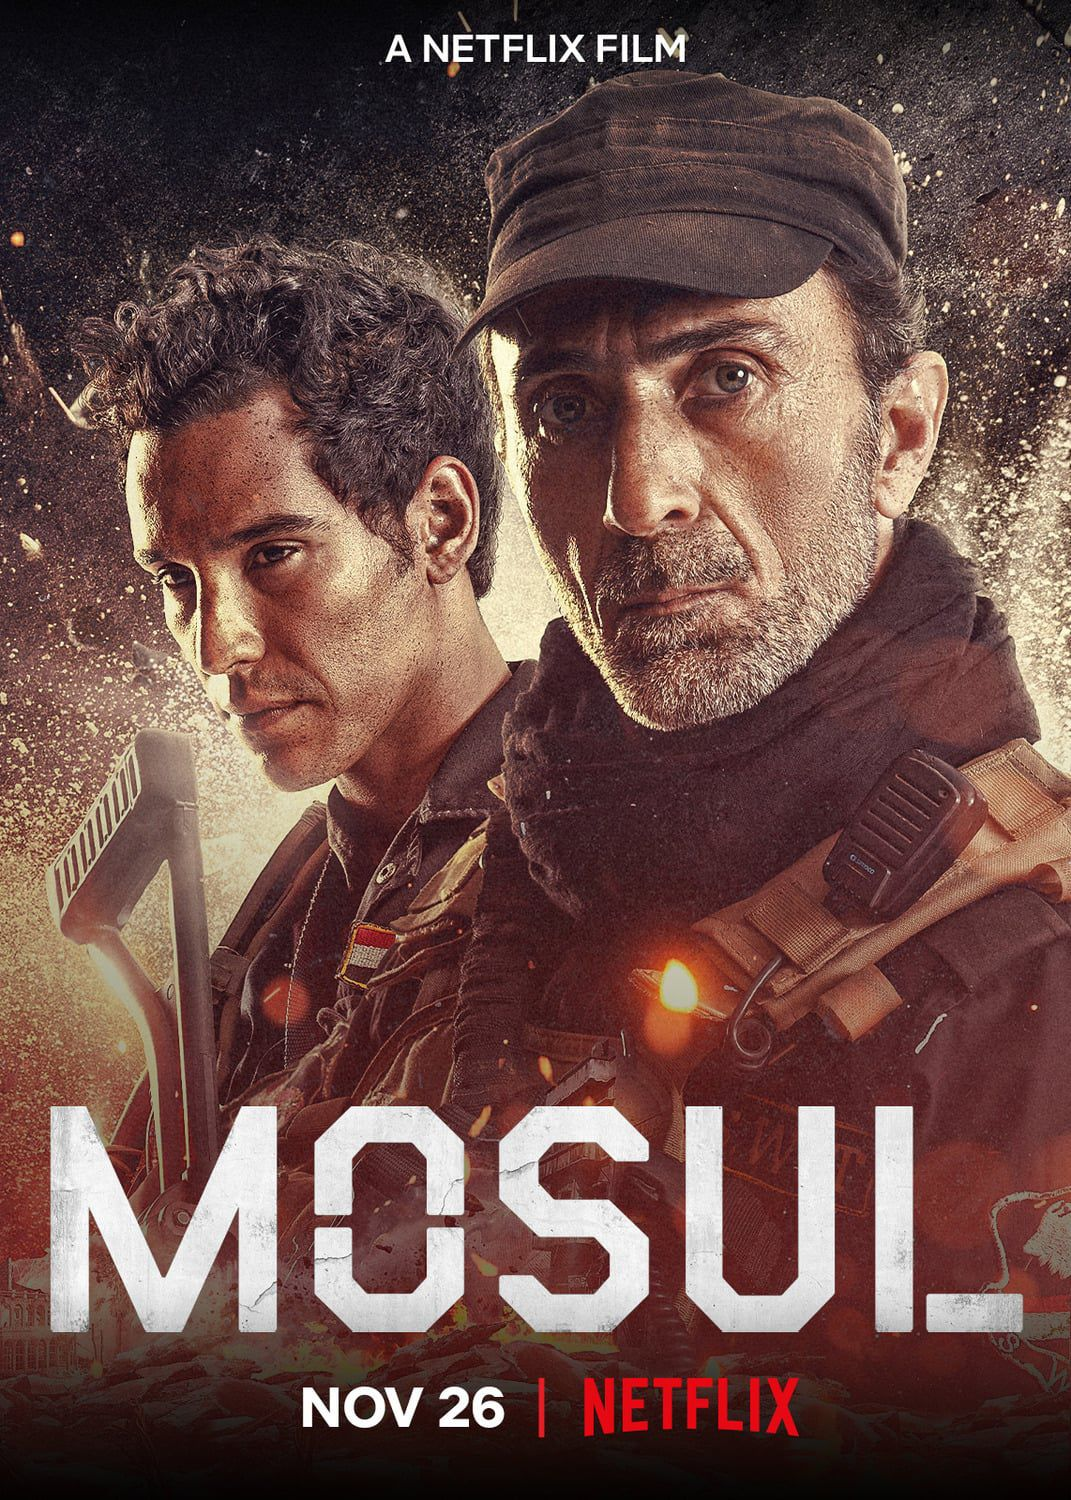 Voir Film Mosul - Film (2020) streaming VF gratuit complet